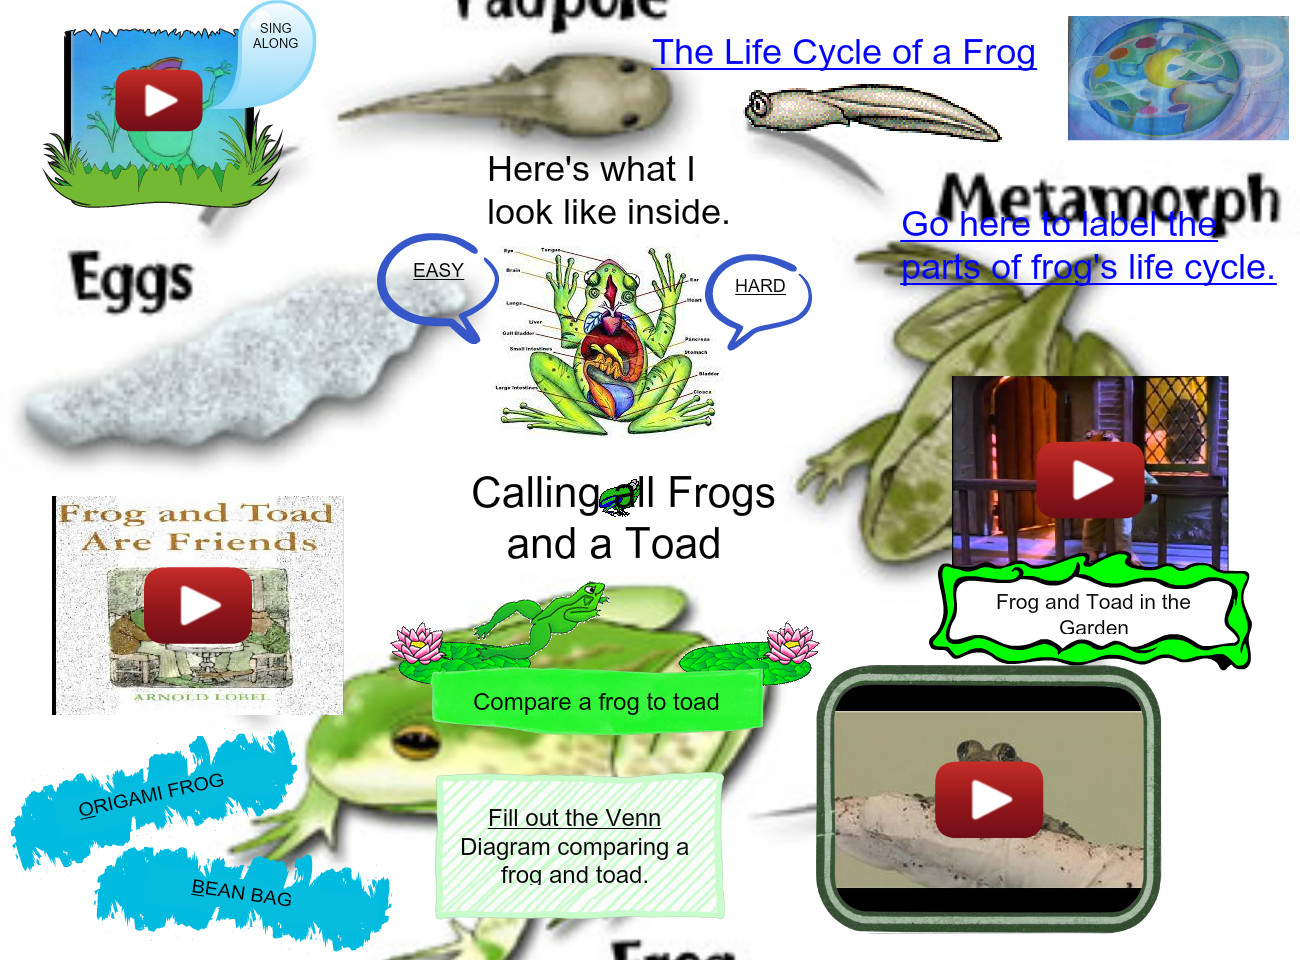 Calling All Frogs